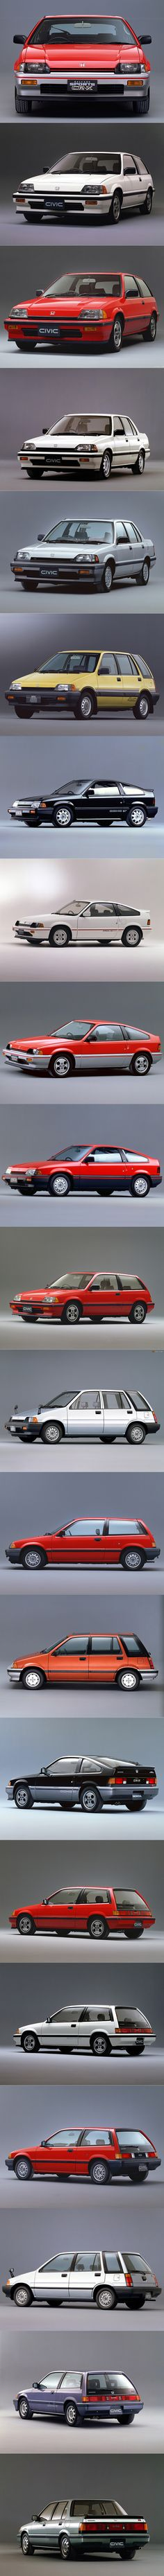 1984 Honda Civic / Ballade Sports CR-X / Shuttle / Si / Japan / red white grey silver yellow black blue